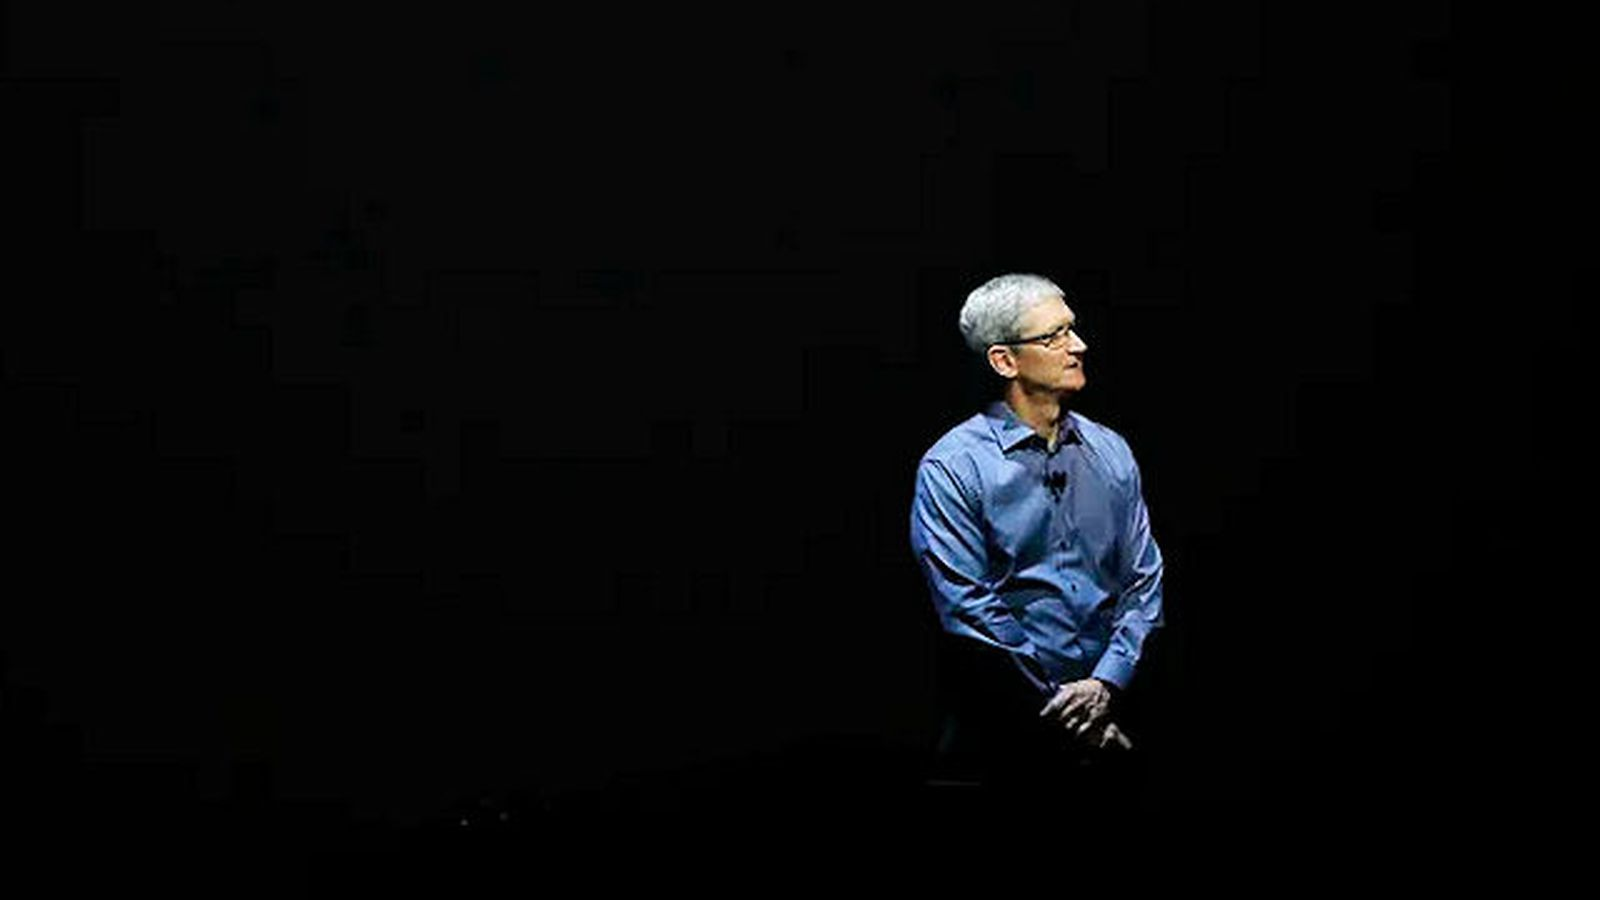 1600x900 - Tim Cook Wallpapers 25